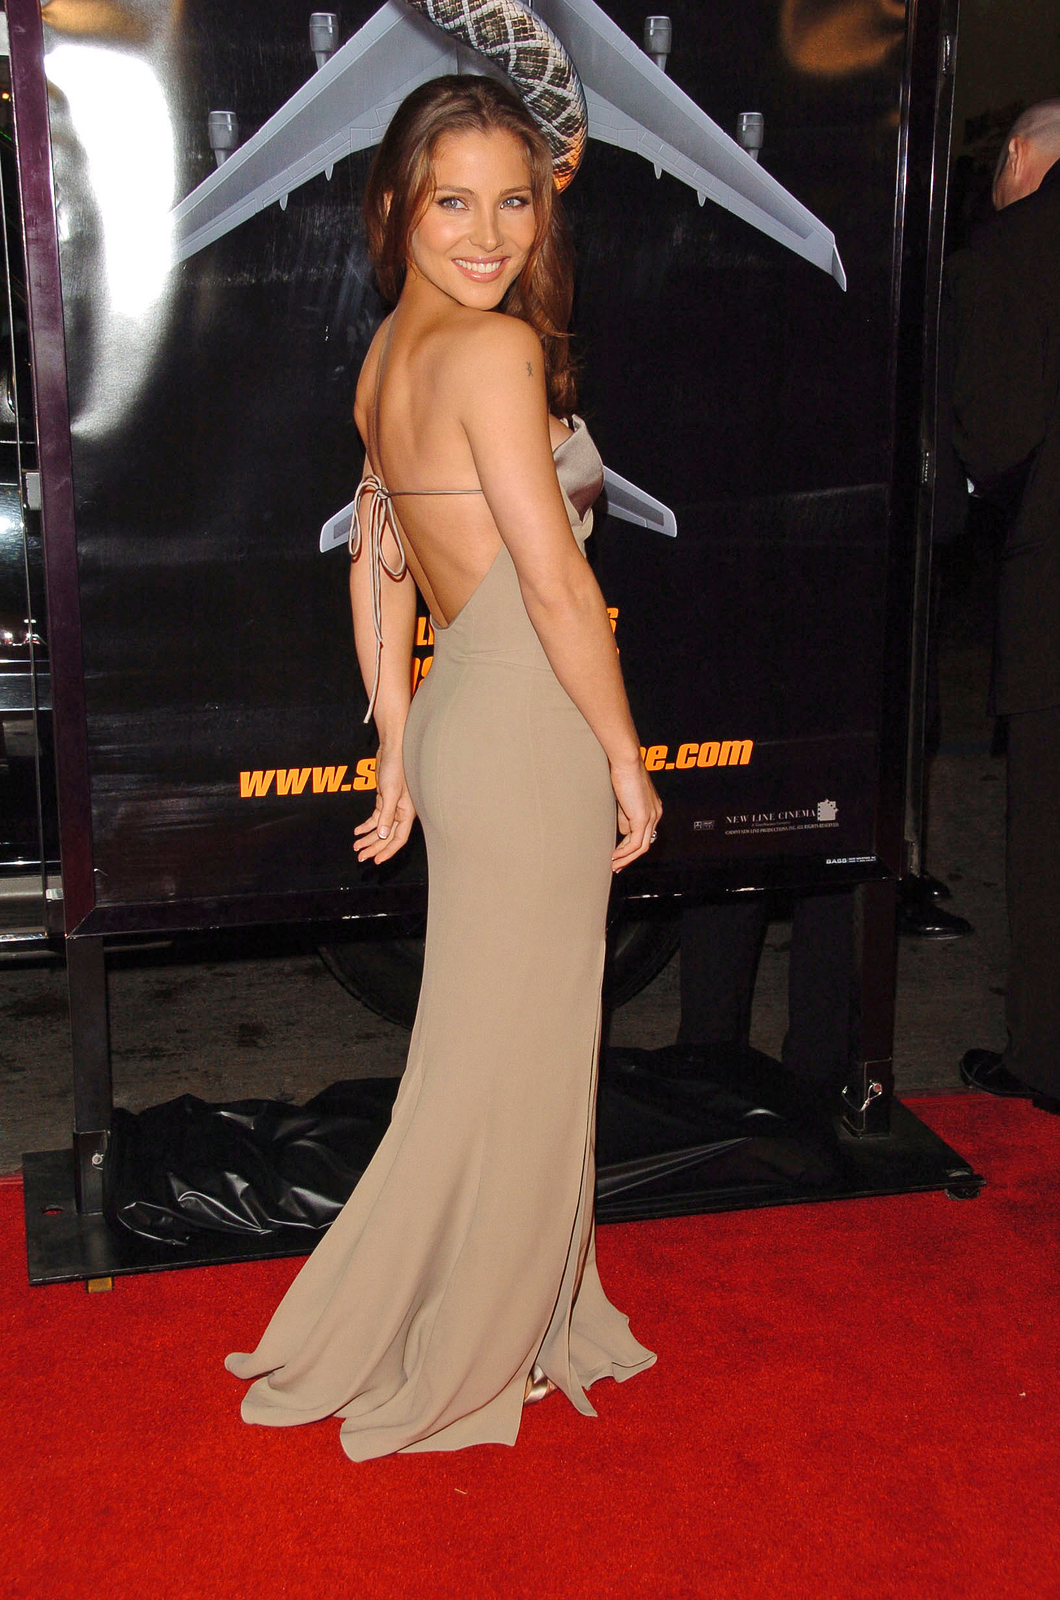 """Elsa Pataky at Premiere of """"Snakes On A Plane"""" Photo Credit: S Buckley / Shutterstock"""